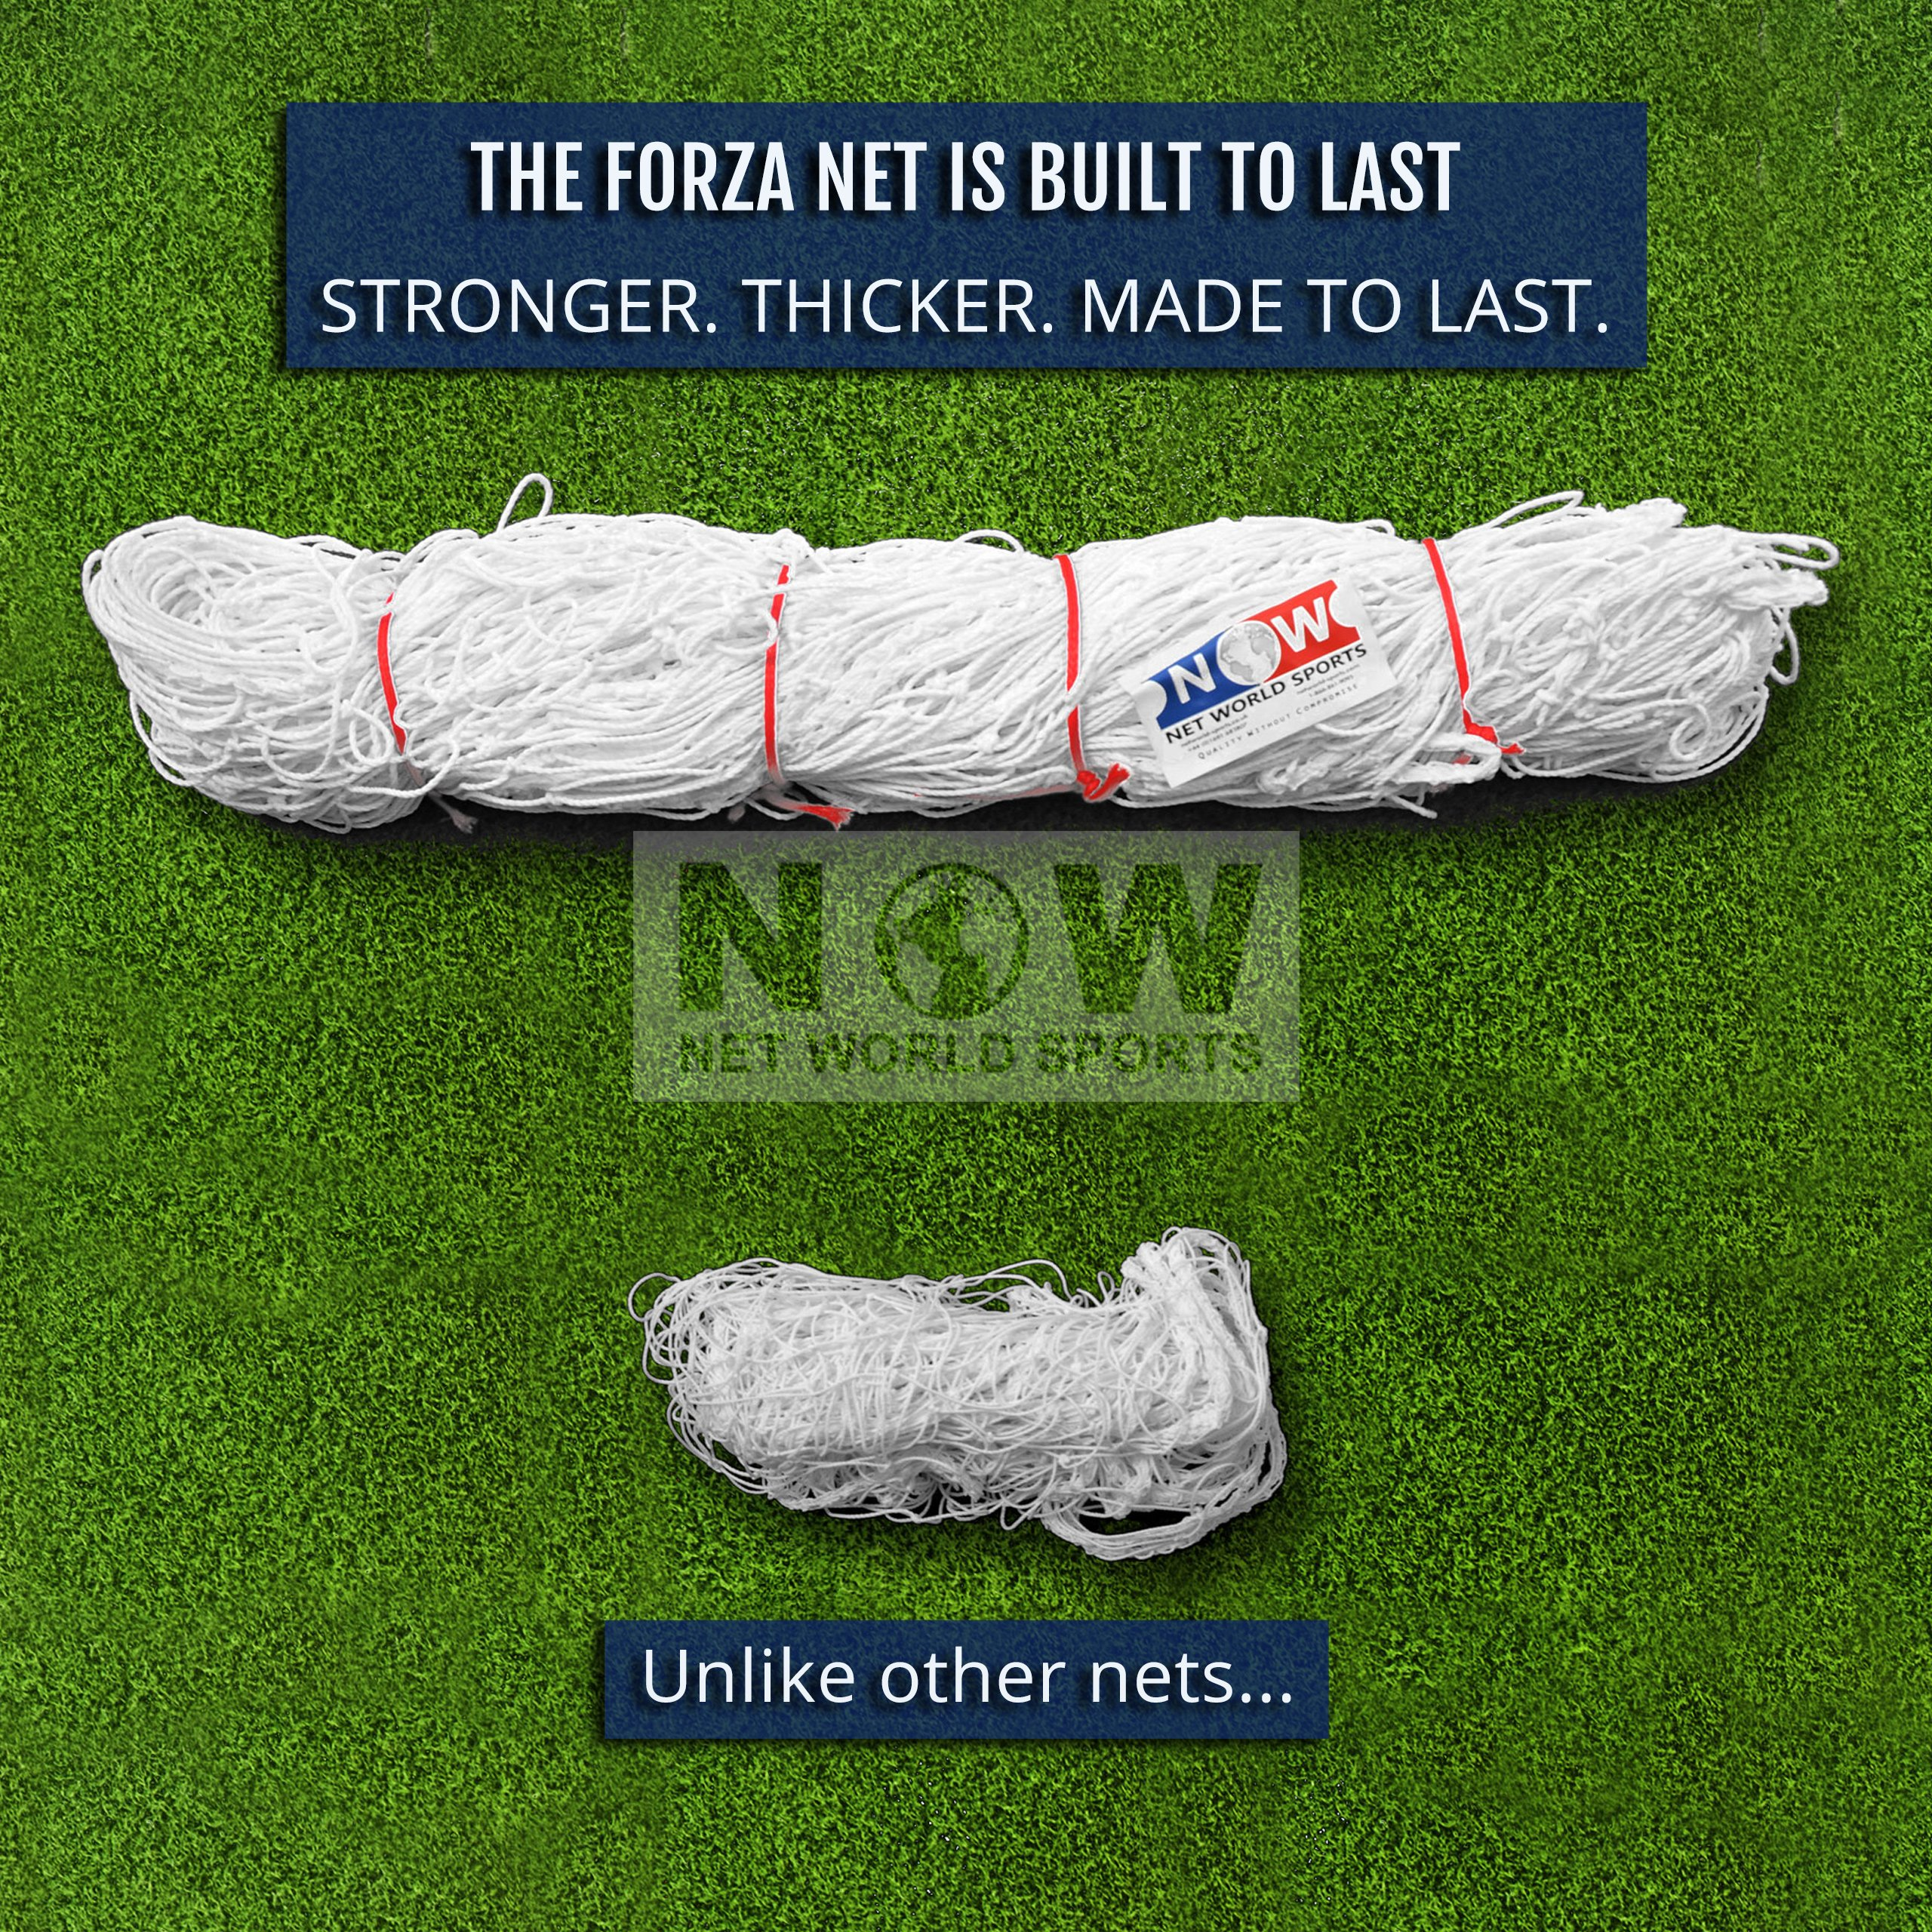 FORZA ''Match Standard'' 12' x 6' Professional Soccer Goal and Net - The Best Goal That Money Can Buy! (12 x 6 FORZA Goal & Carry Bag) by Net World Sports (Image #4)